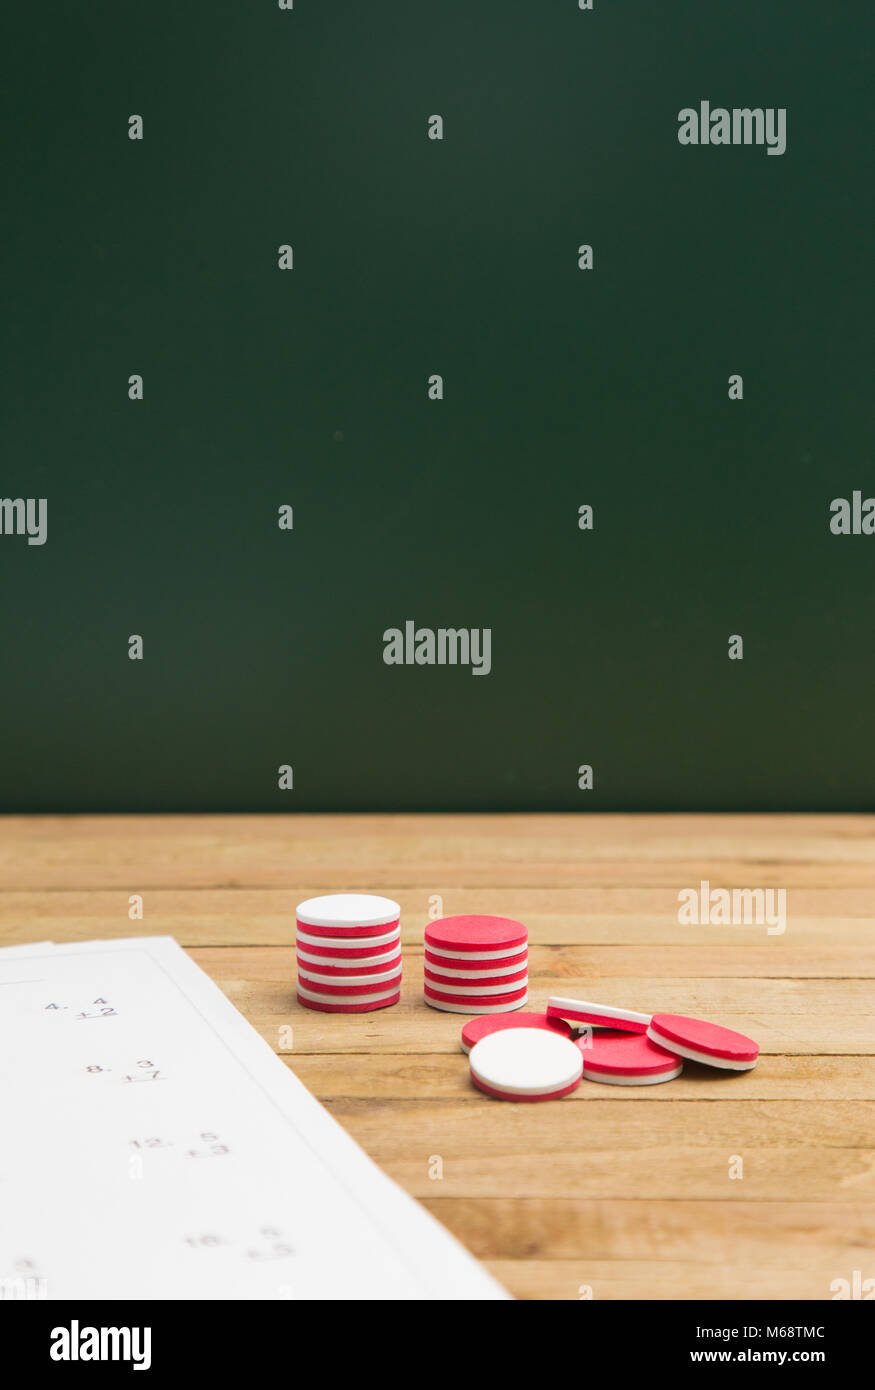 Simple Math Worksheet on a Wooden Table Stock Photo: 175986620 - Alamy